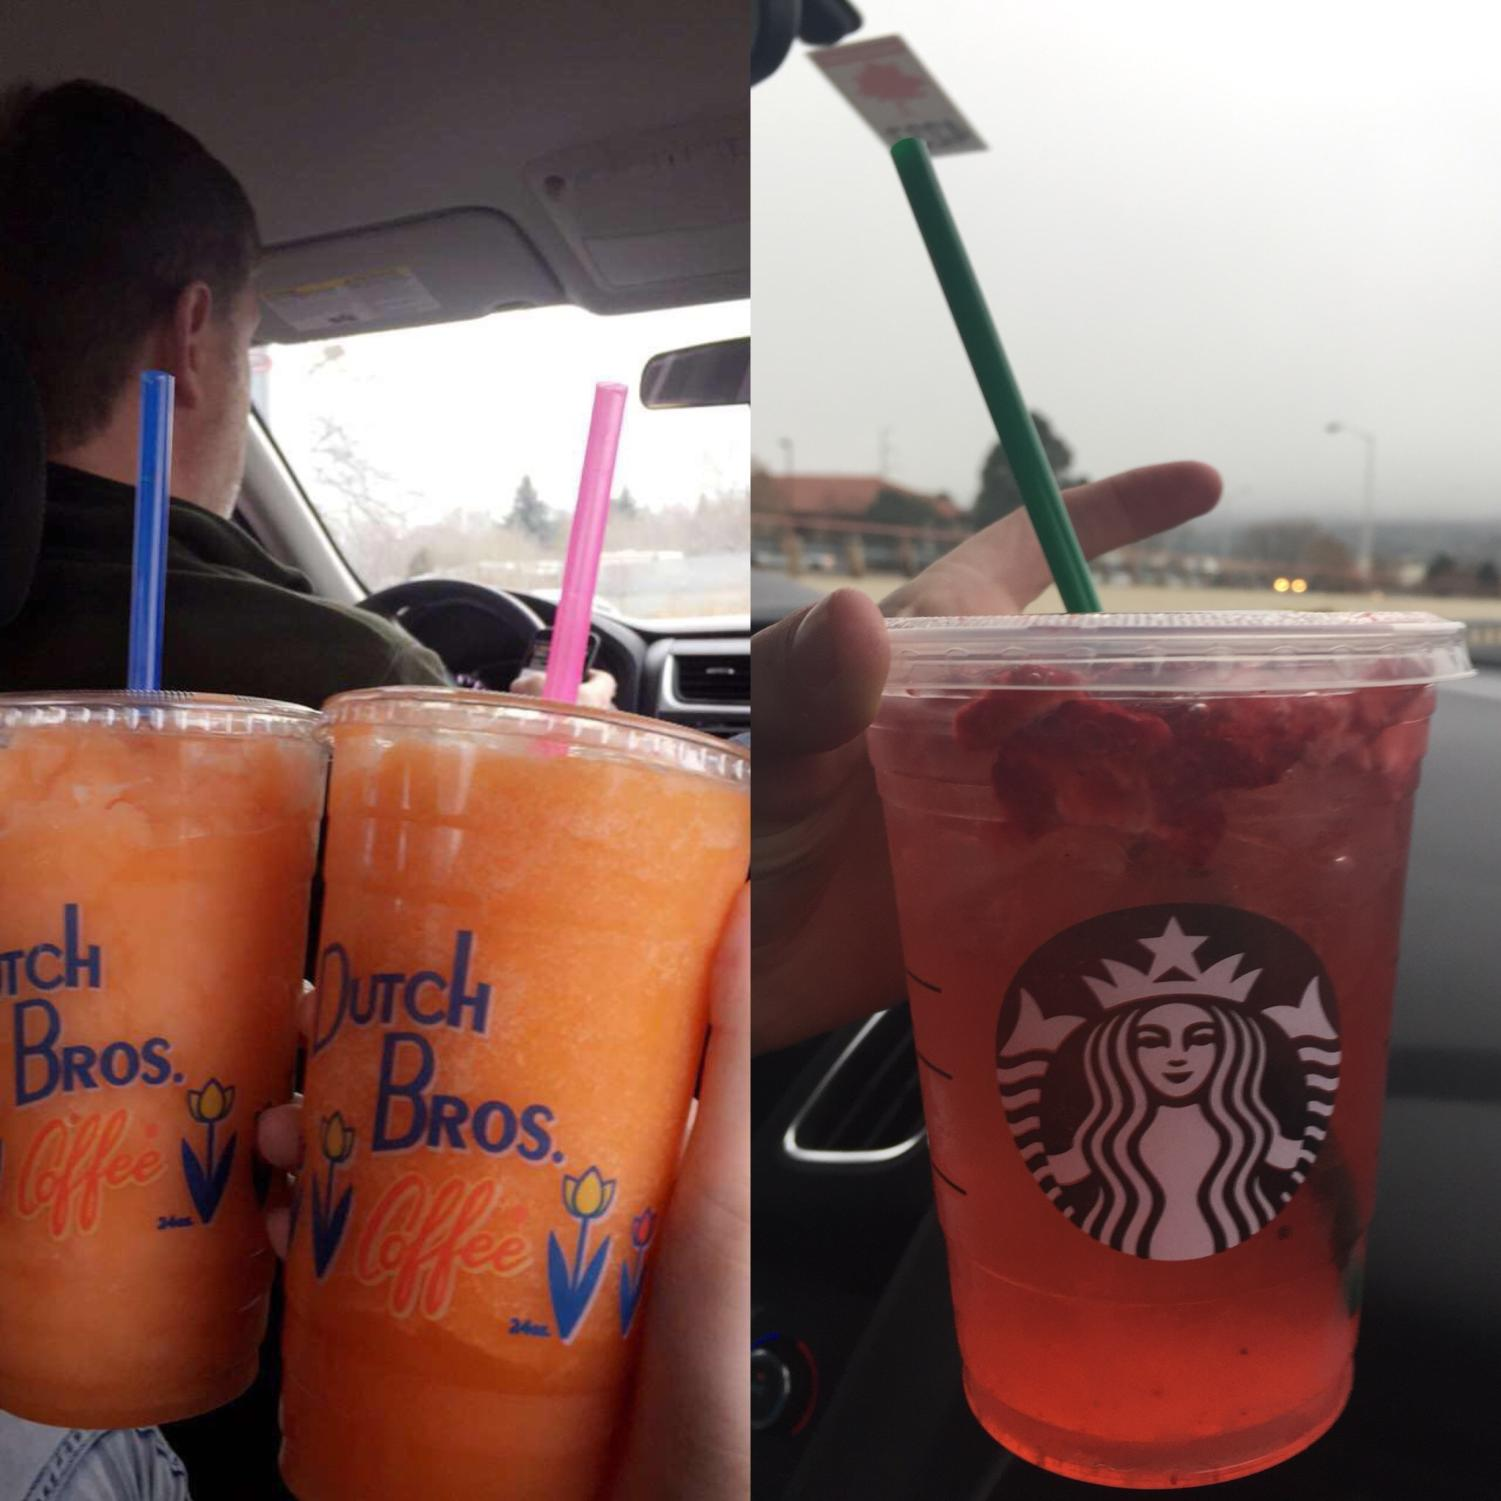 Two popular drinks from the two competitors.